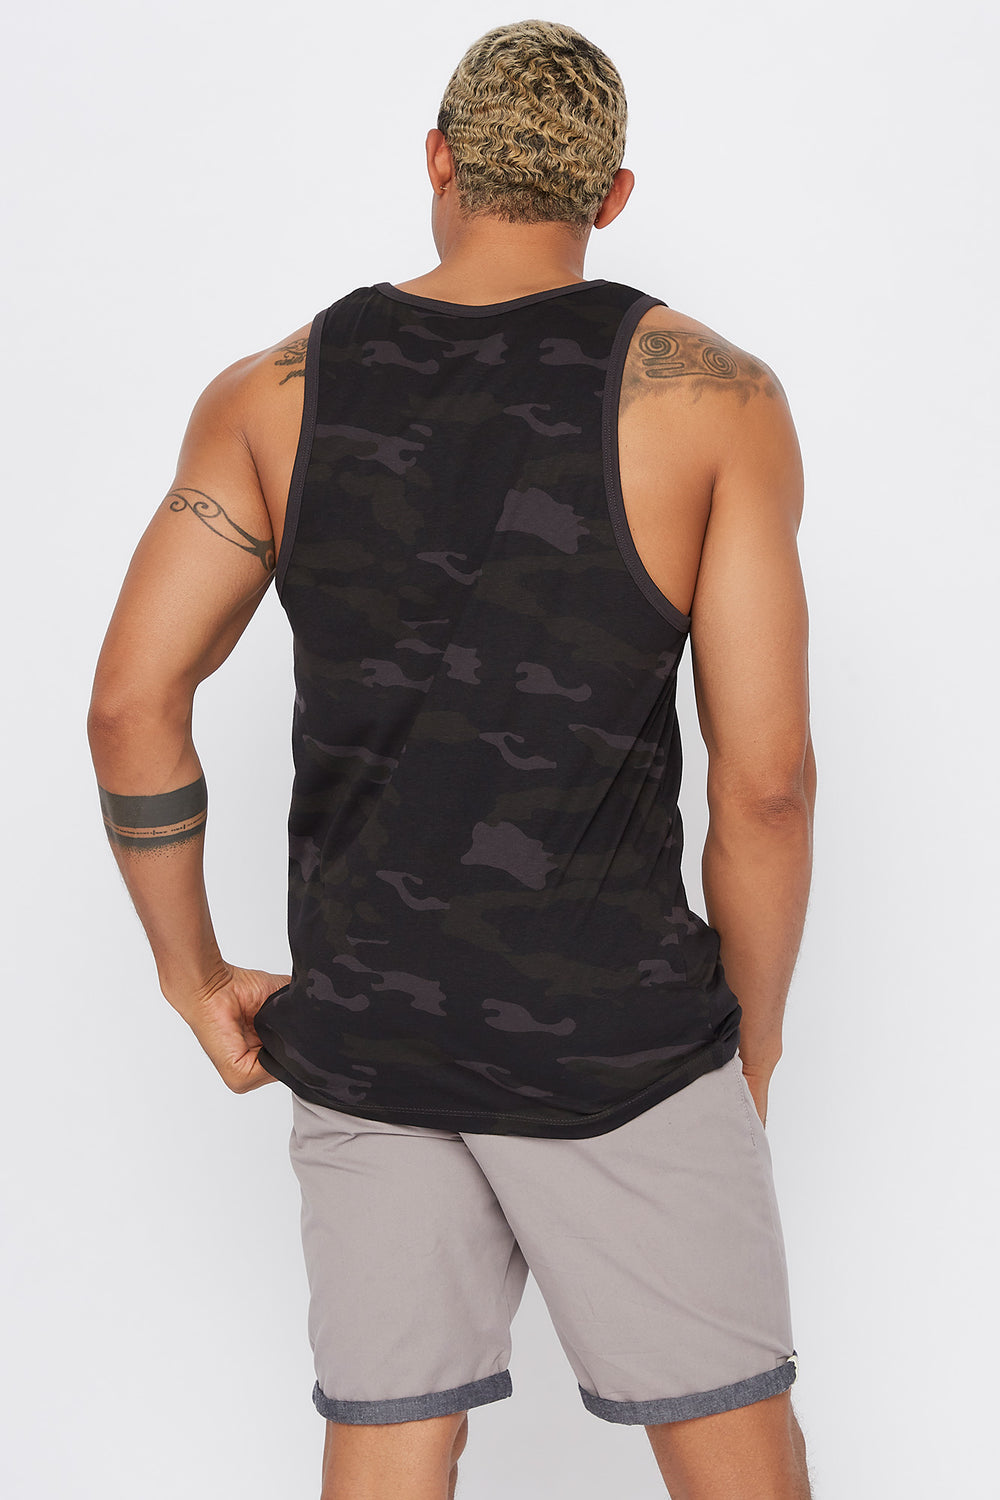 Camo Savage Tank Black with White